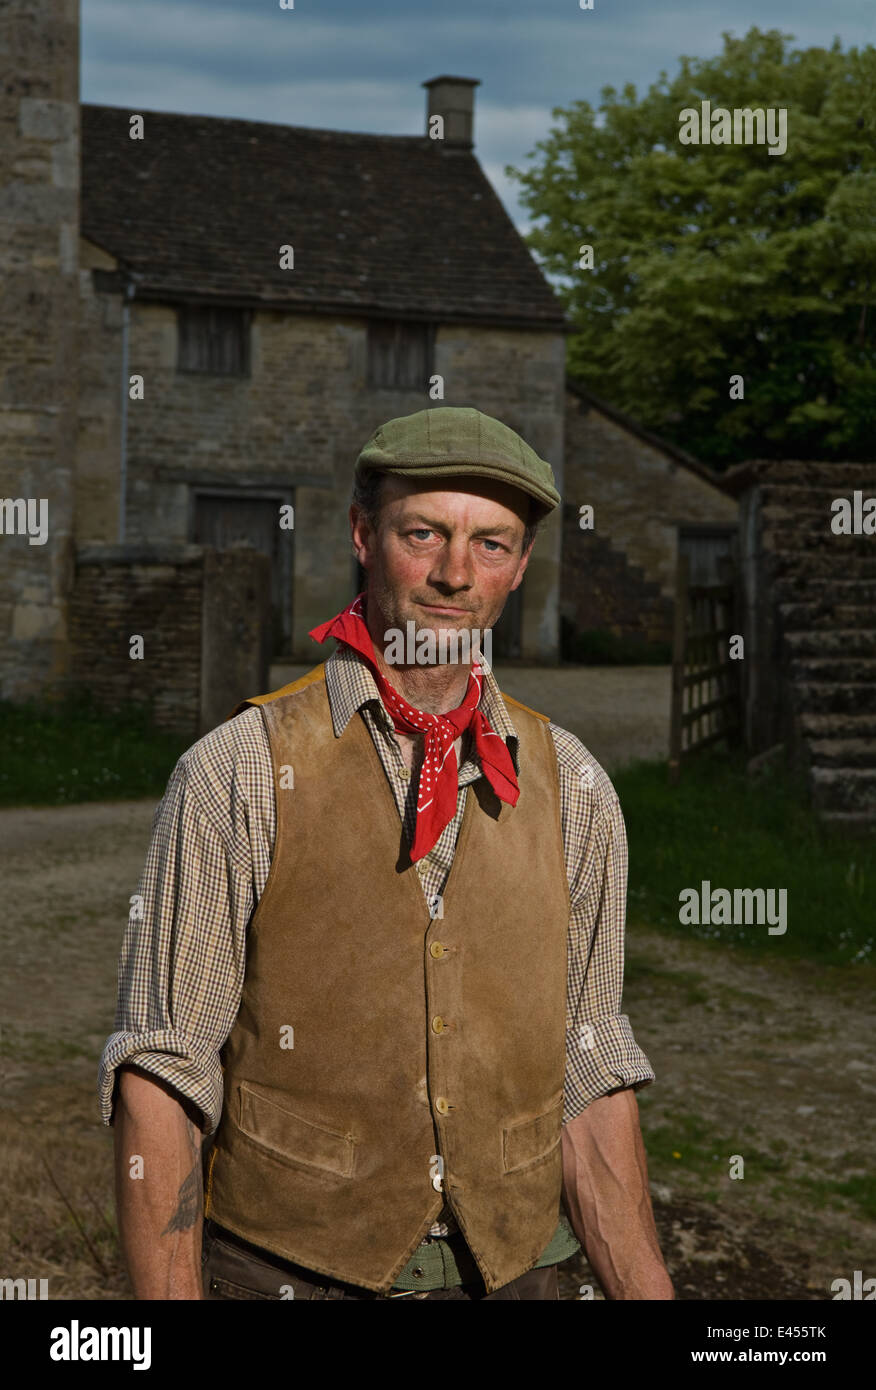 Portrait of mature traditional farmer in farmyard - Stock Image